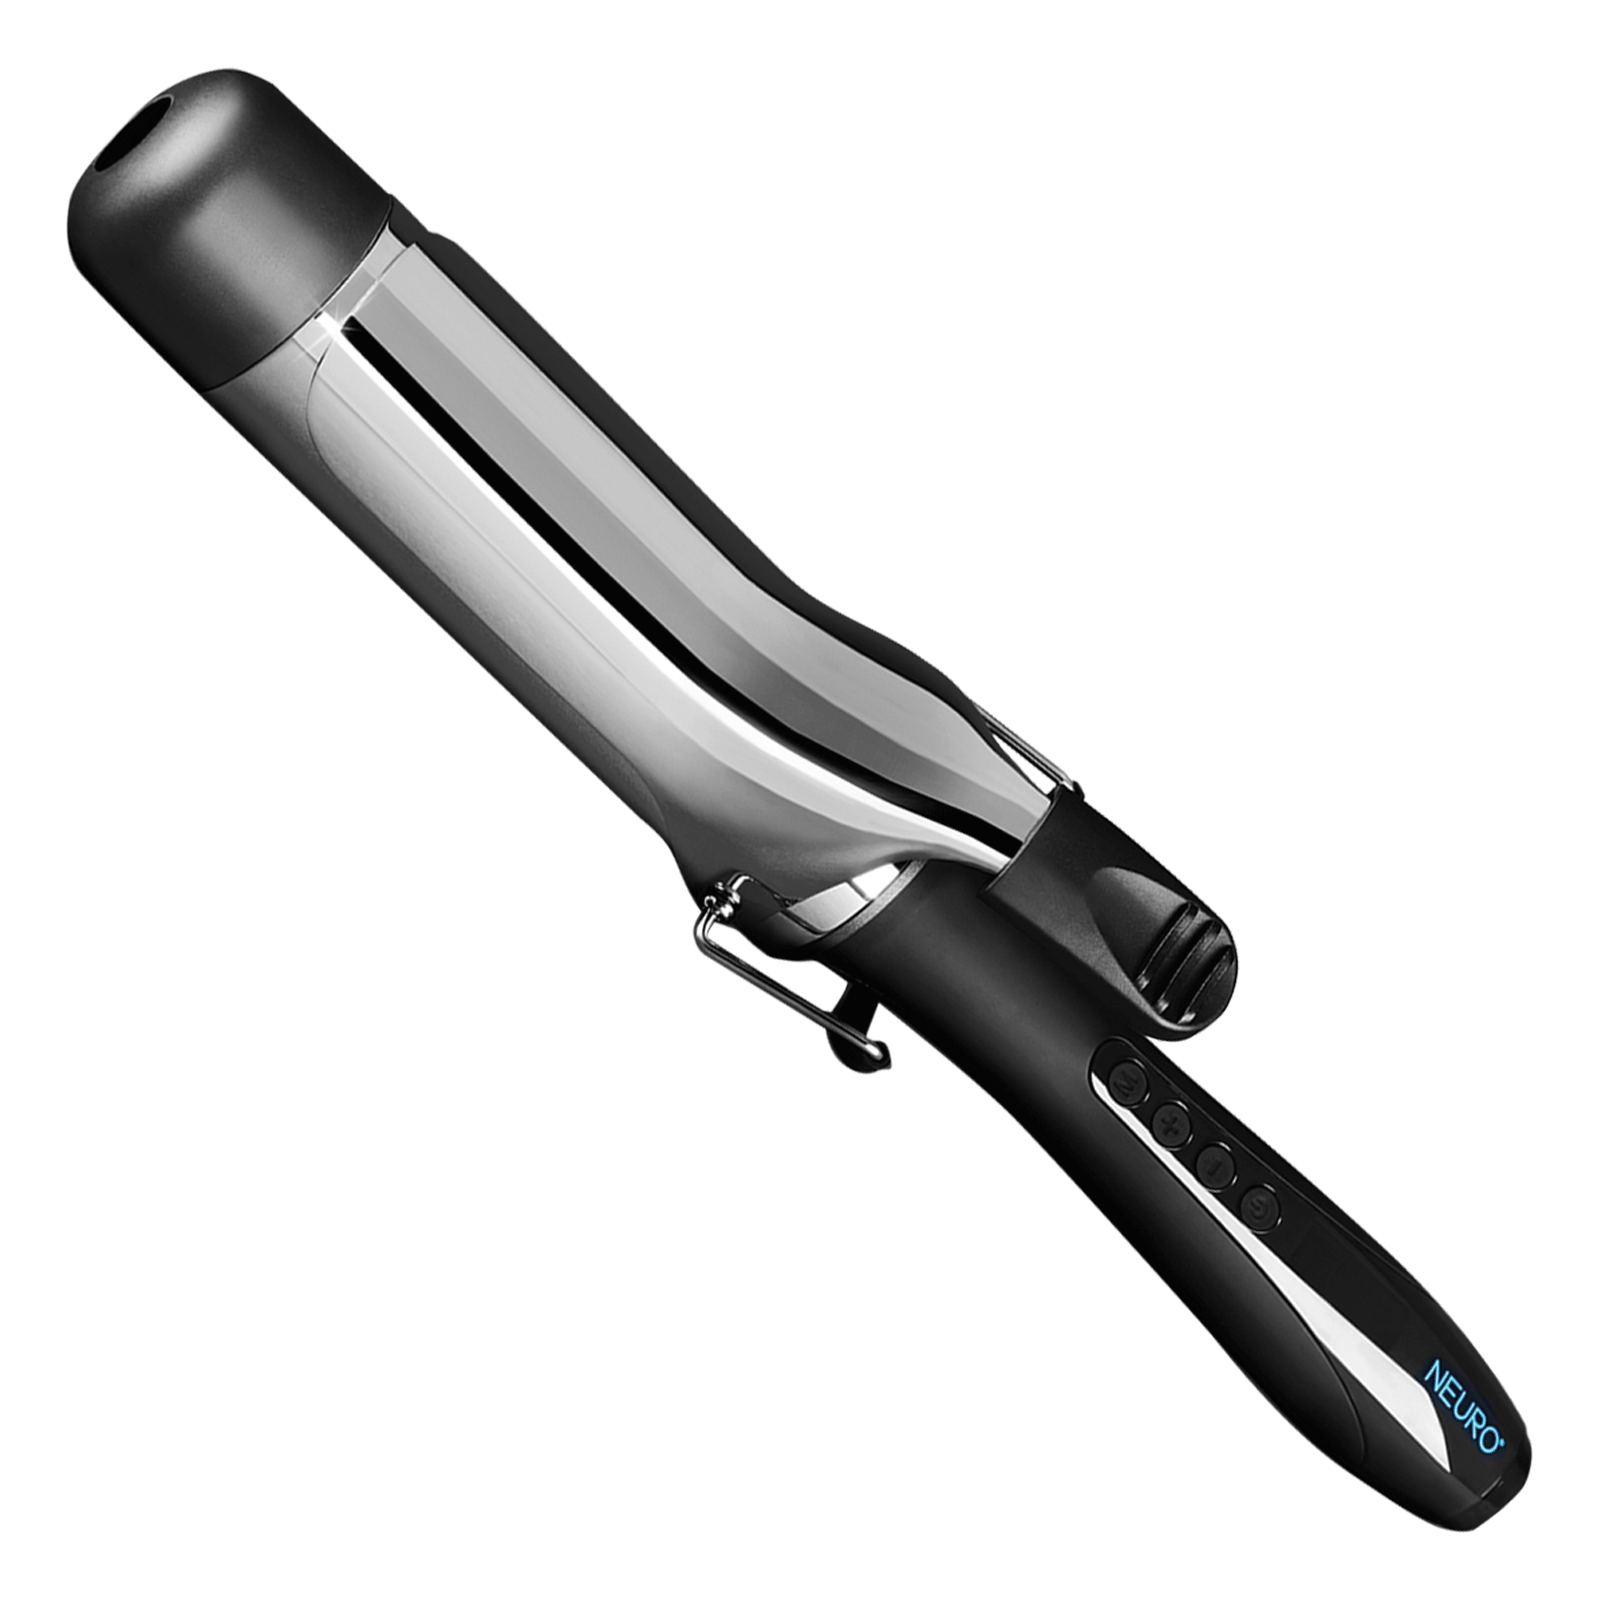 Neuro Curl XL Spring Curling Iron 1.75 Inch